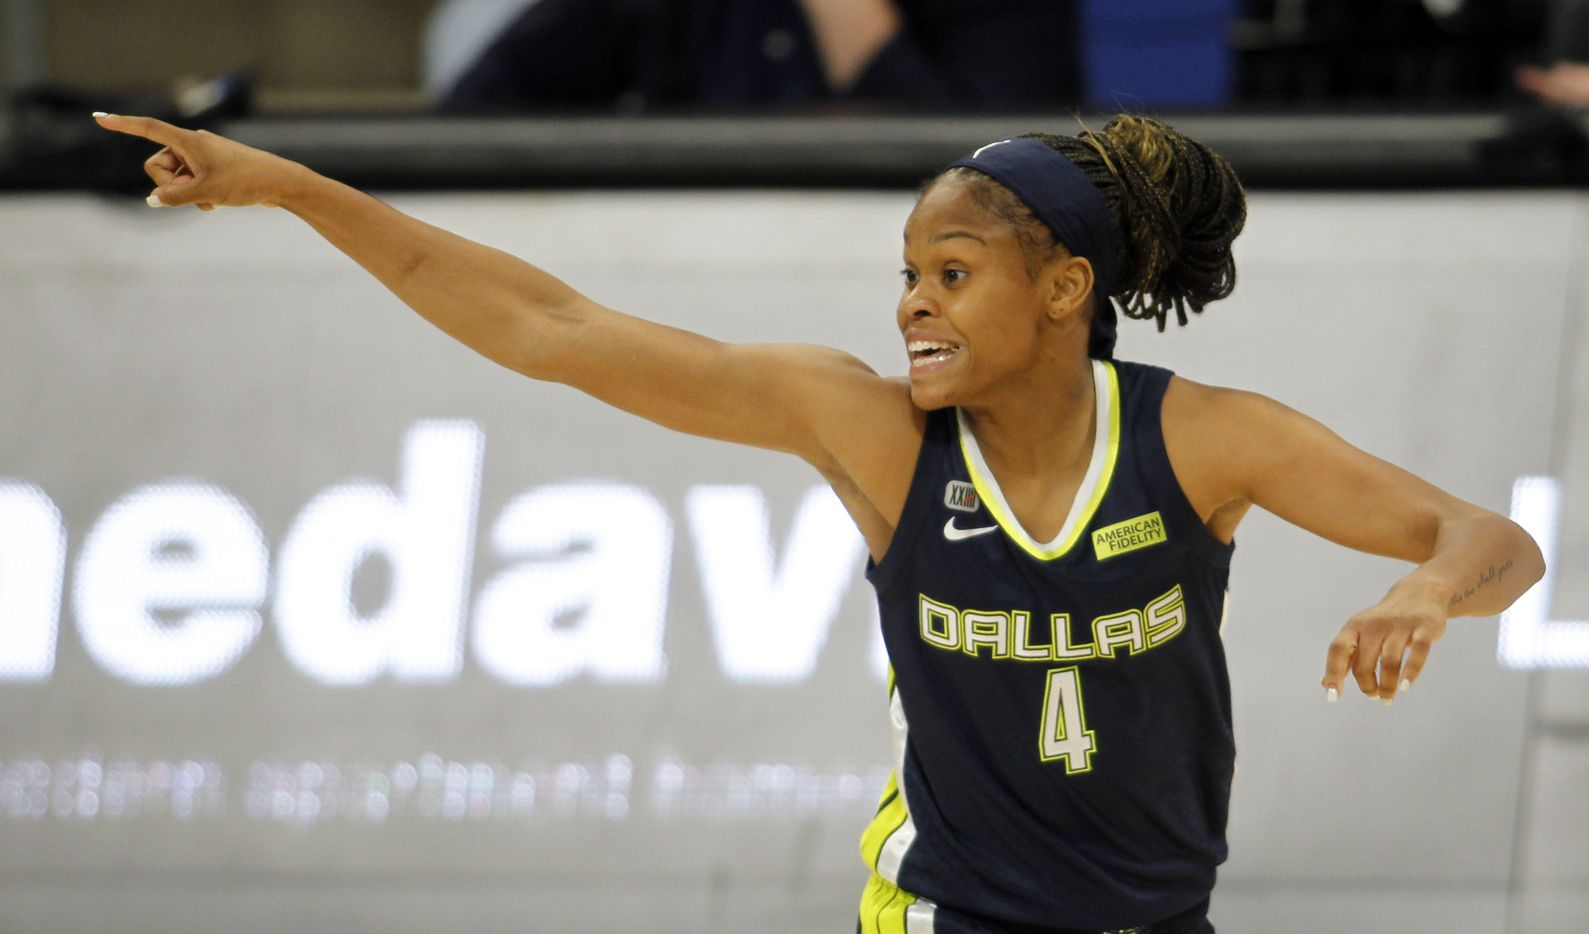 Dallas Wings guard Moriah Harrison (4) reacts after sinking a 3-pointer during first half action against the Indiana Fever. The Dallas Wings hosted the Indiana Fever for their WNBA game held at College Park Center on the campus of UT-Arlington on August 20, 2021. (Steve Hamm/ Special Contributor)